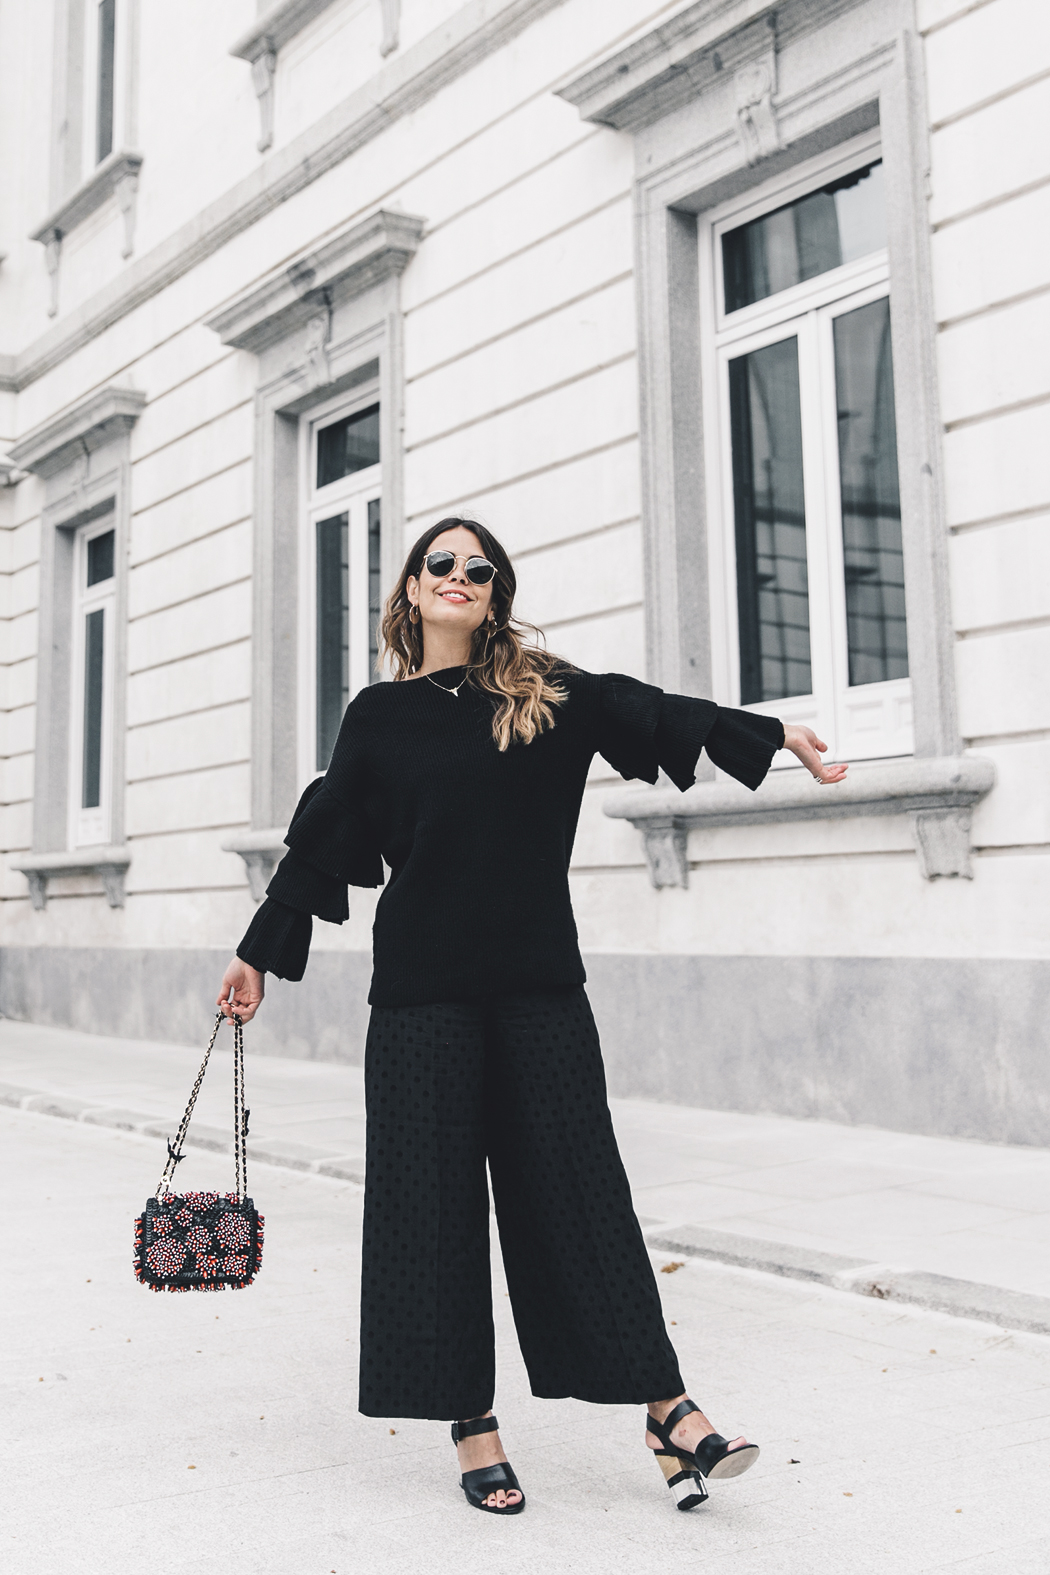 Ruffled_Sleeves_Jumper-Black_Culottes-Dune_Sandals-Beaded_Bag-Outfit-Collage_Vintage-Street_Style-16